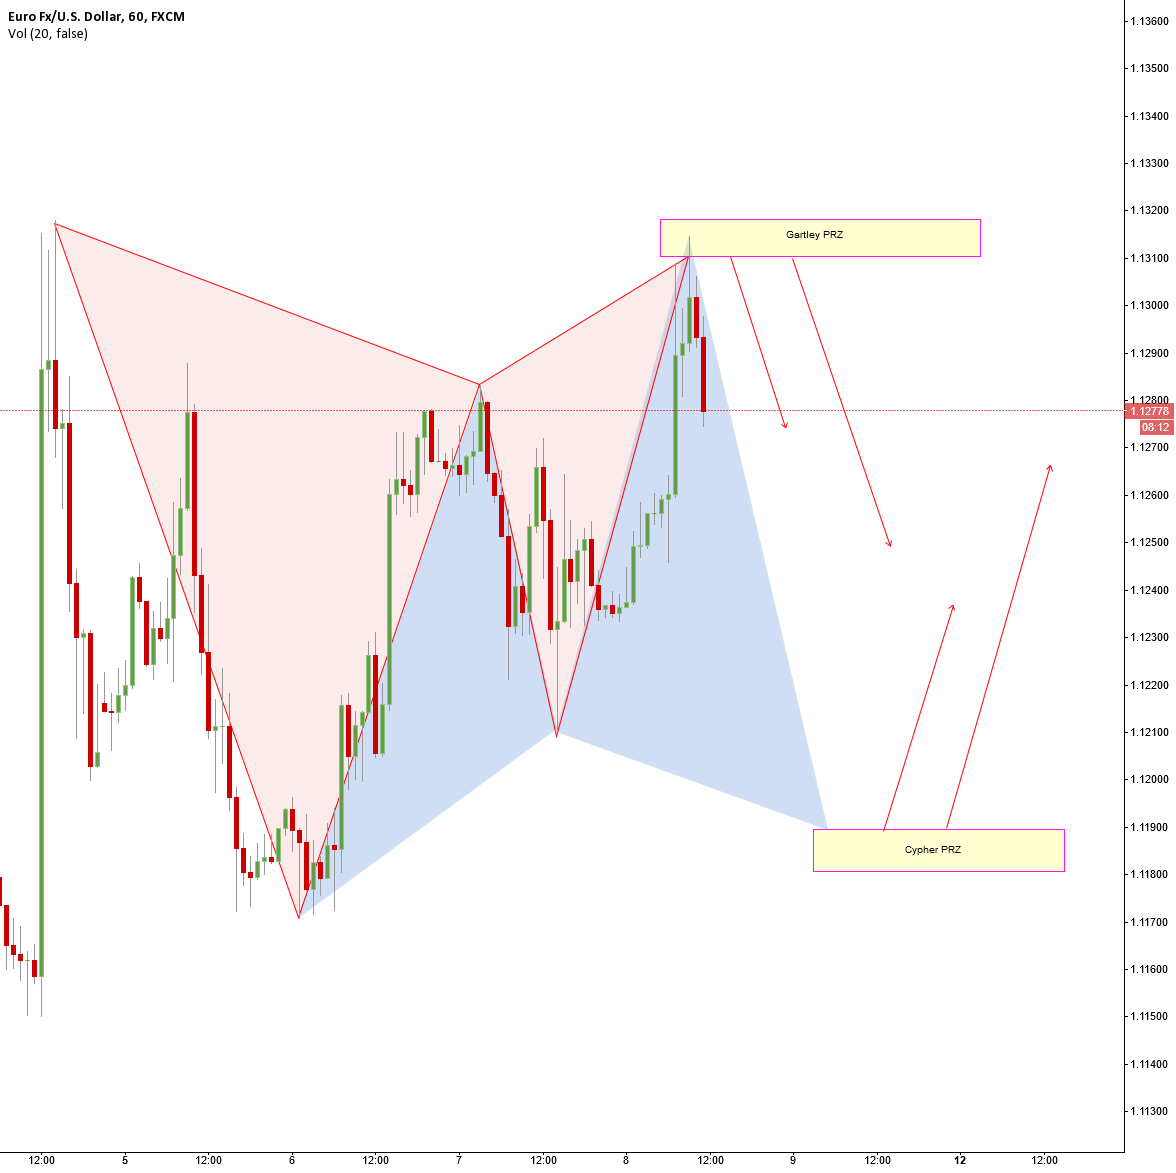 EURUSD A nice setup - Gartley and a potential Cypher